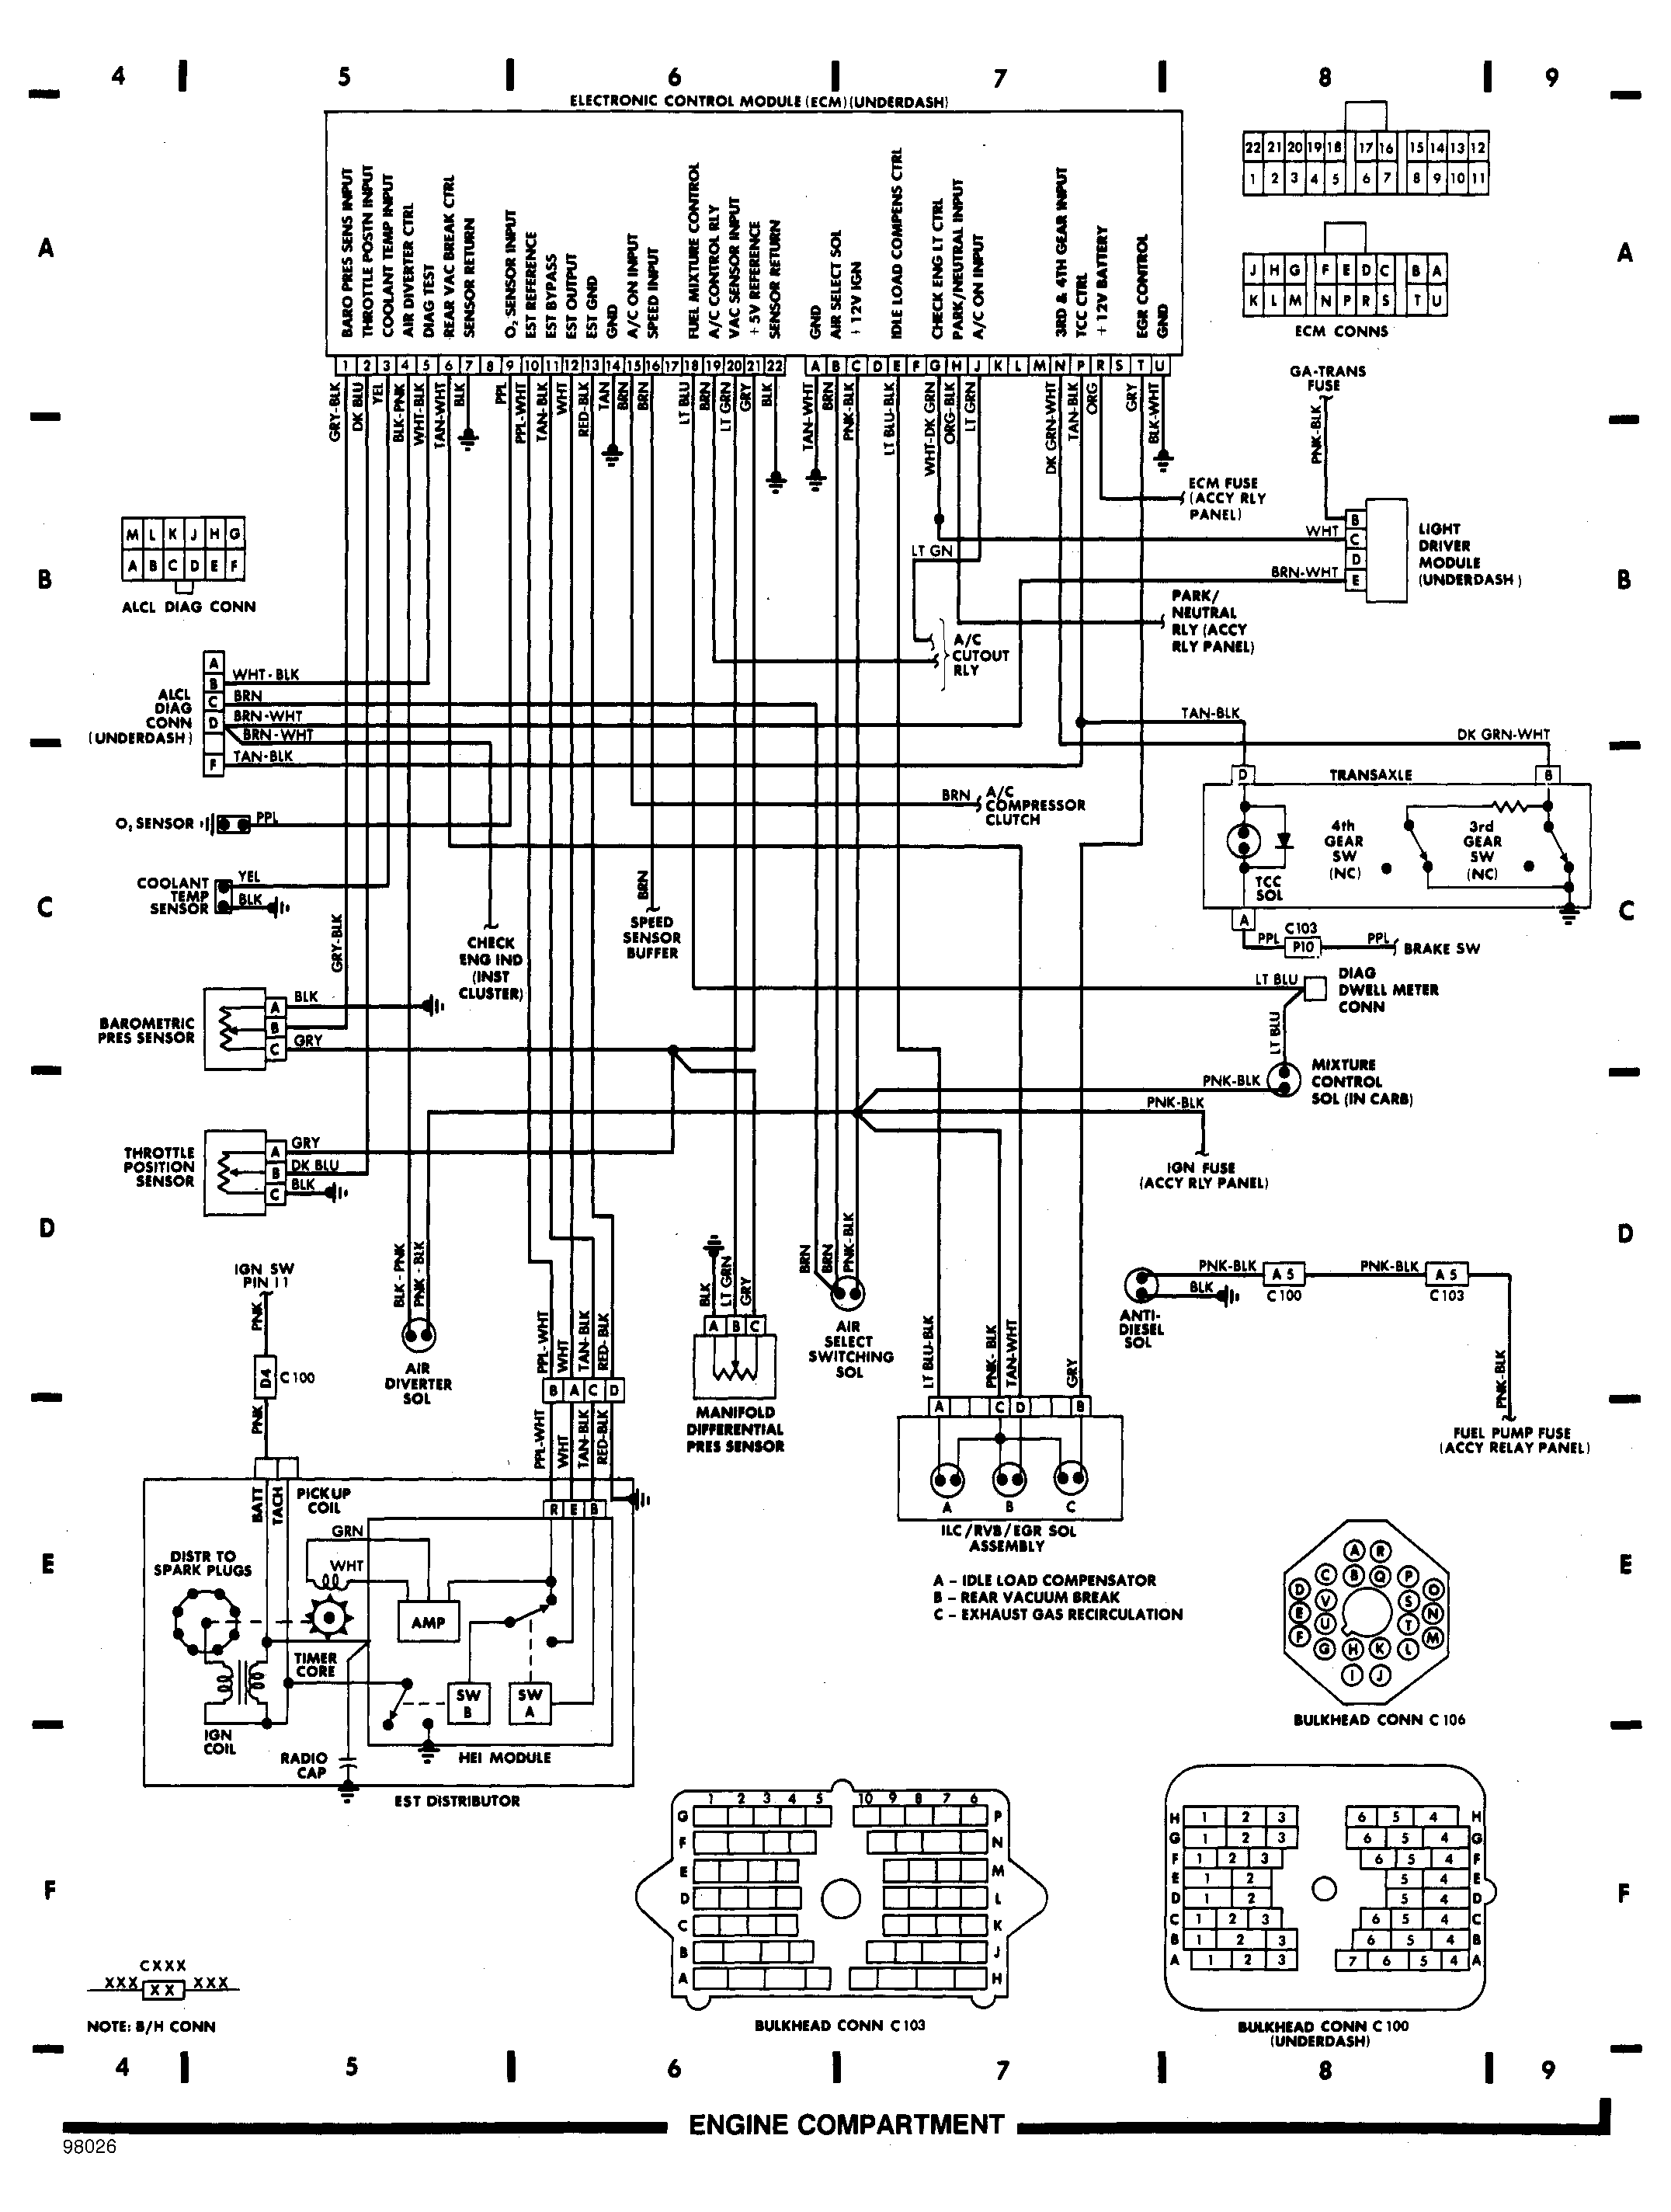 wiring diagrams1987 Cadillac Deville Engine Free Image Wiring Diagram Engine #8